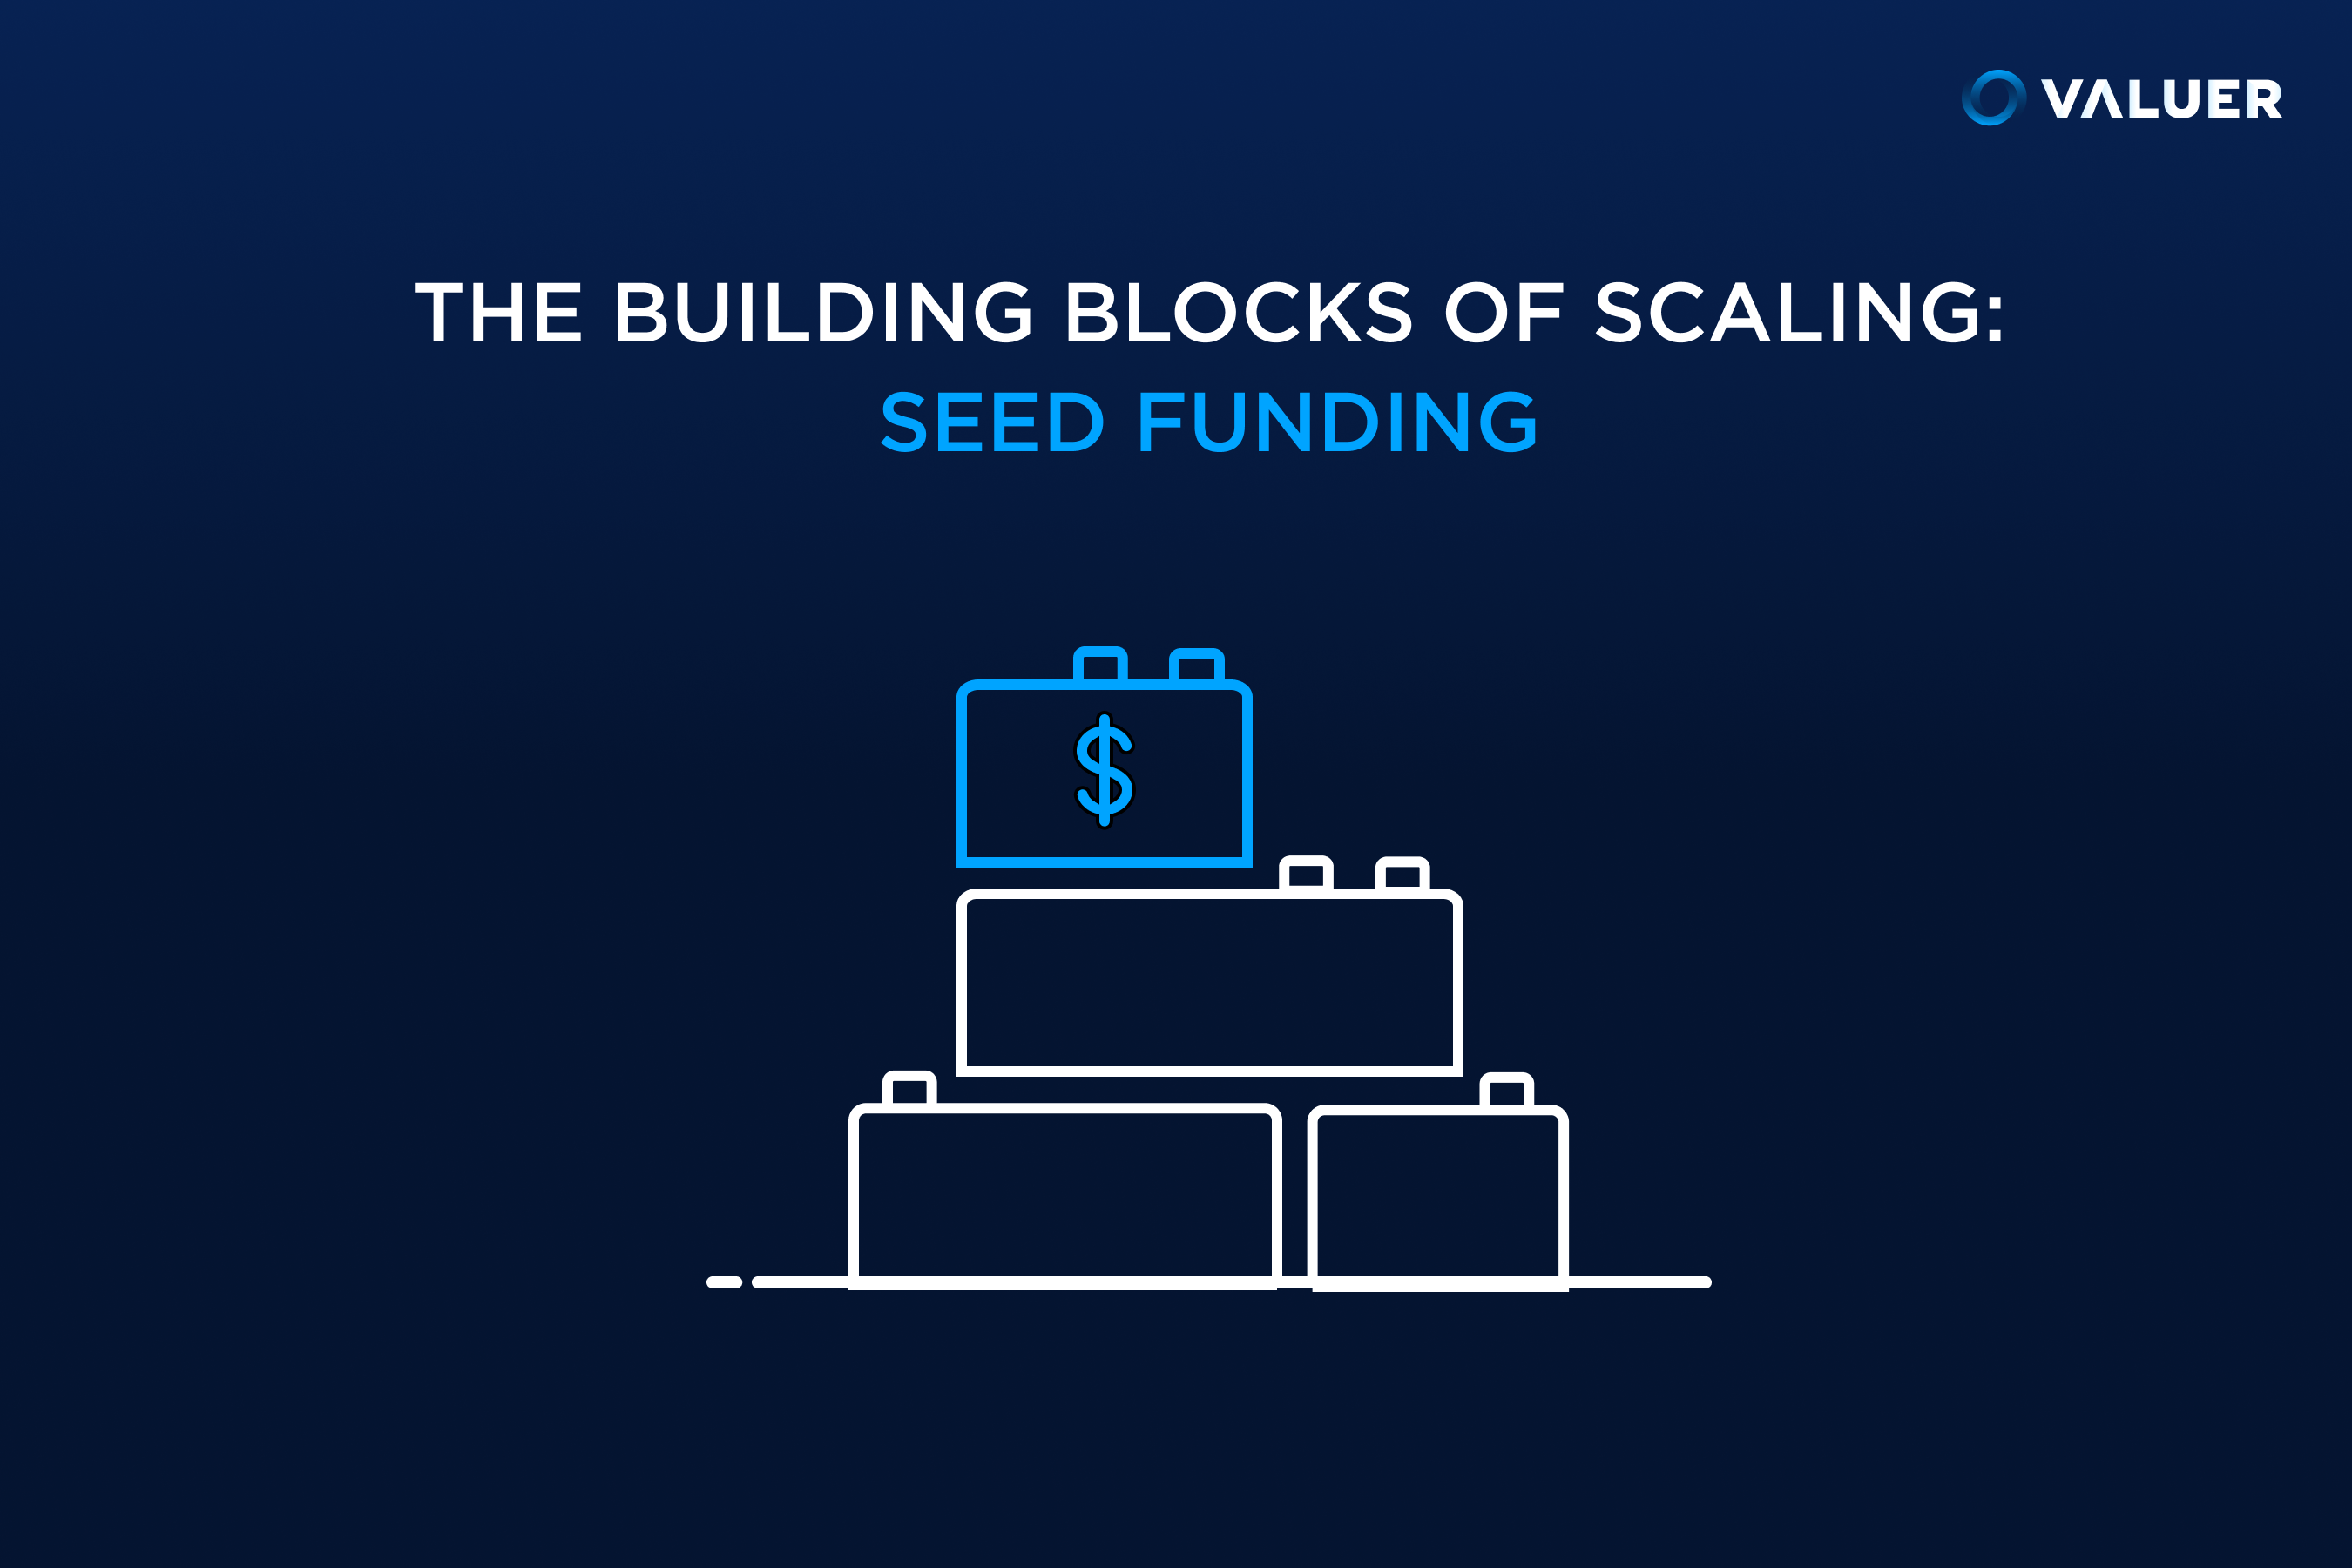 the building blocks of scaling: seed funding